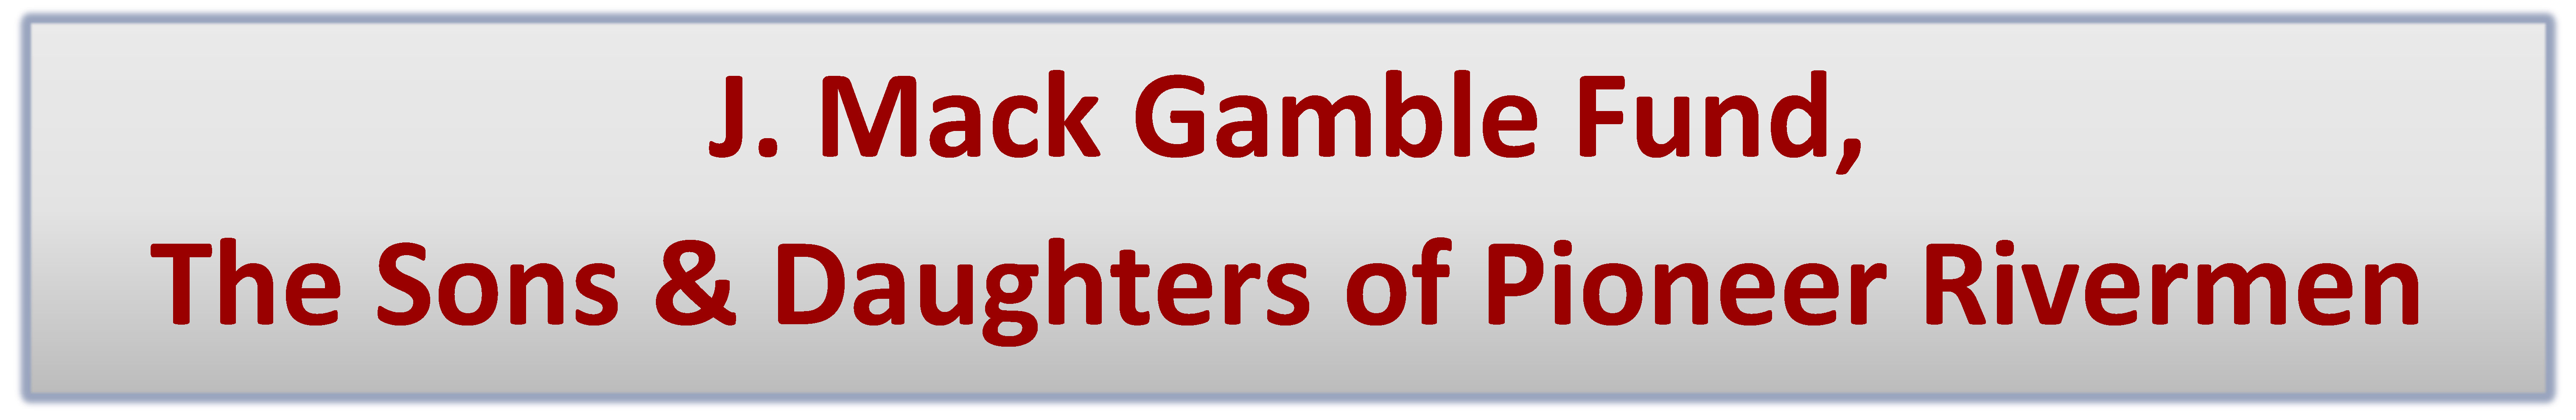 J Mack Gamble Fund